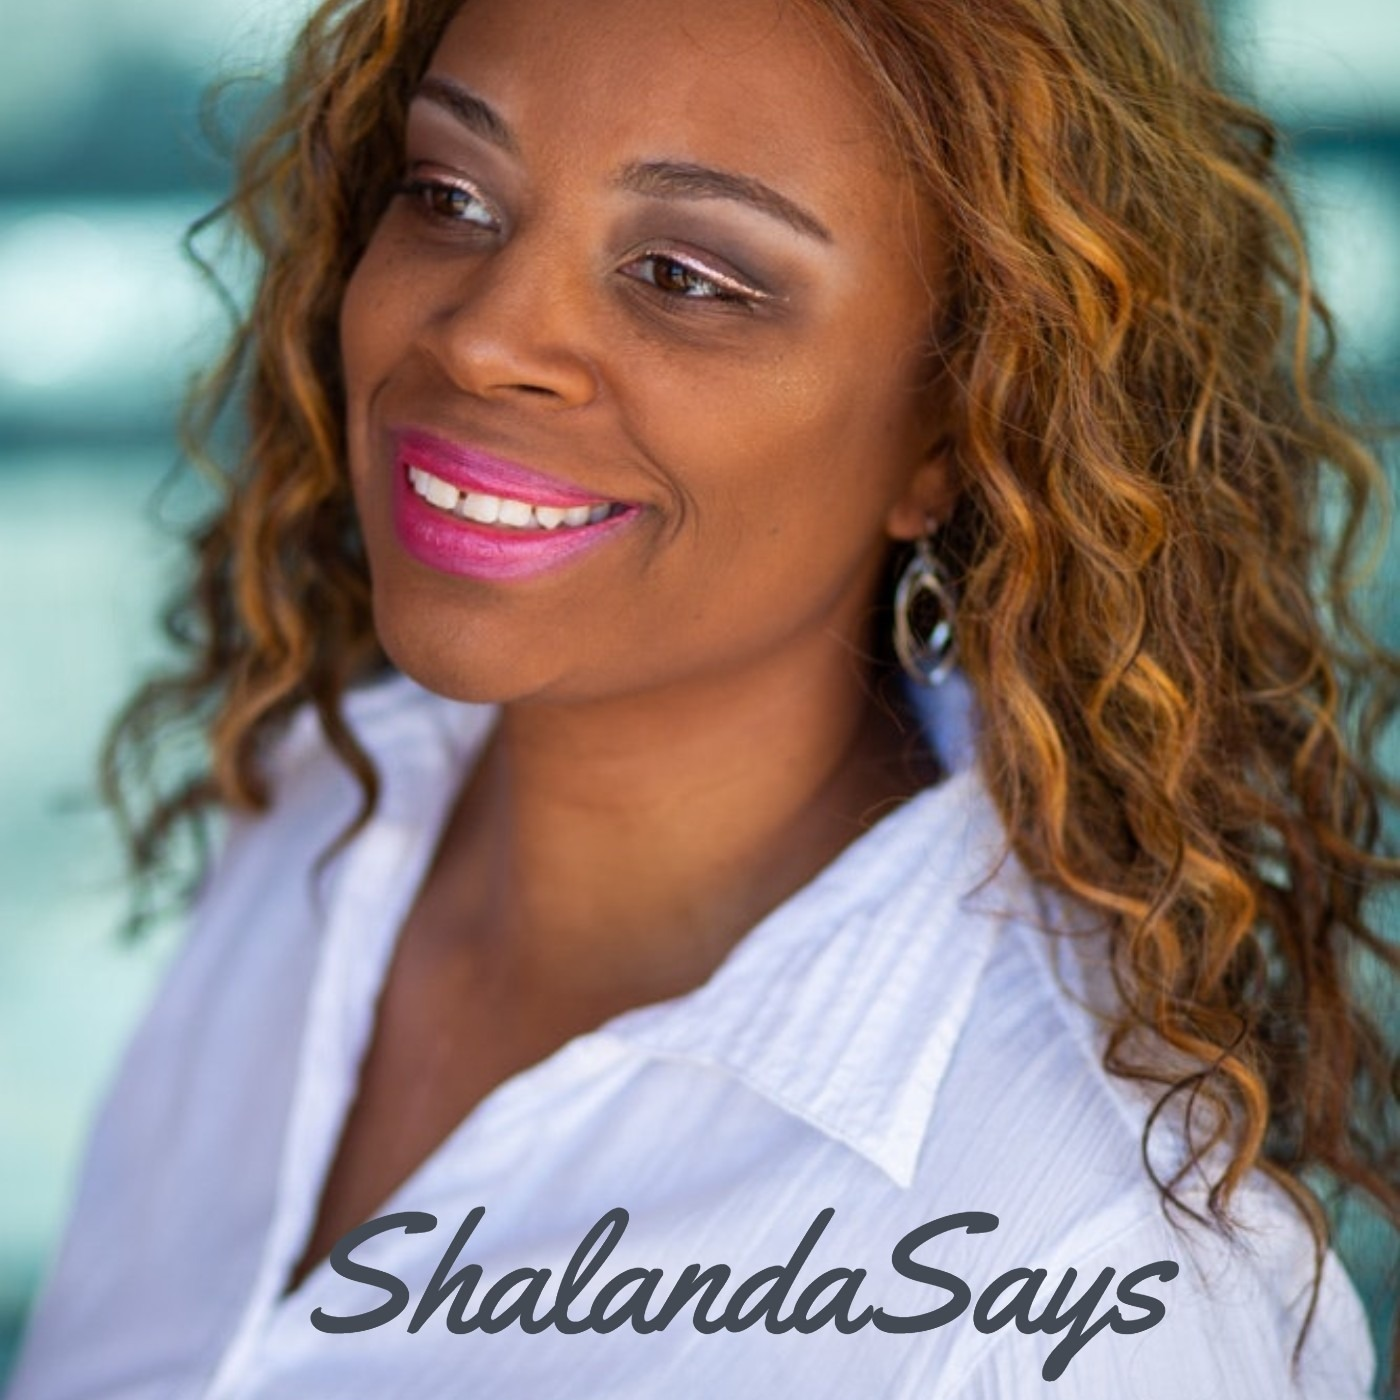 ShalandaSays Meet Life Coach June Ahern